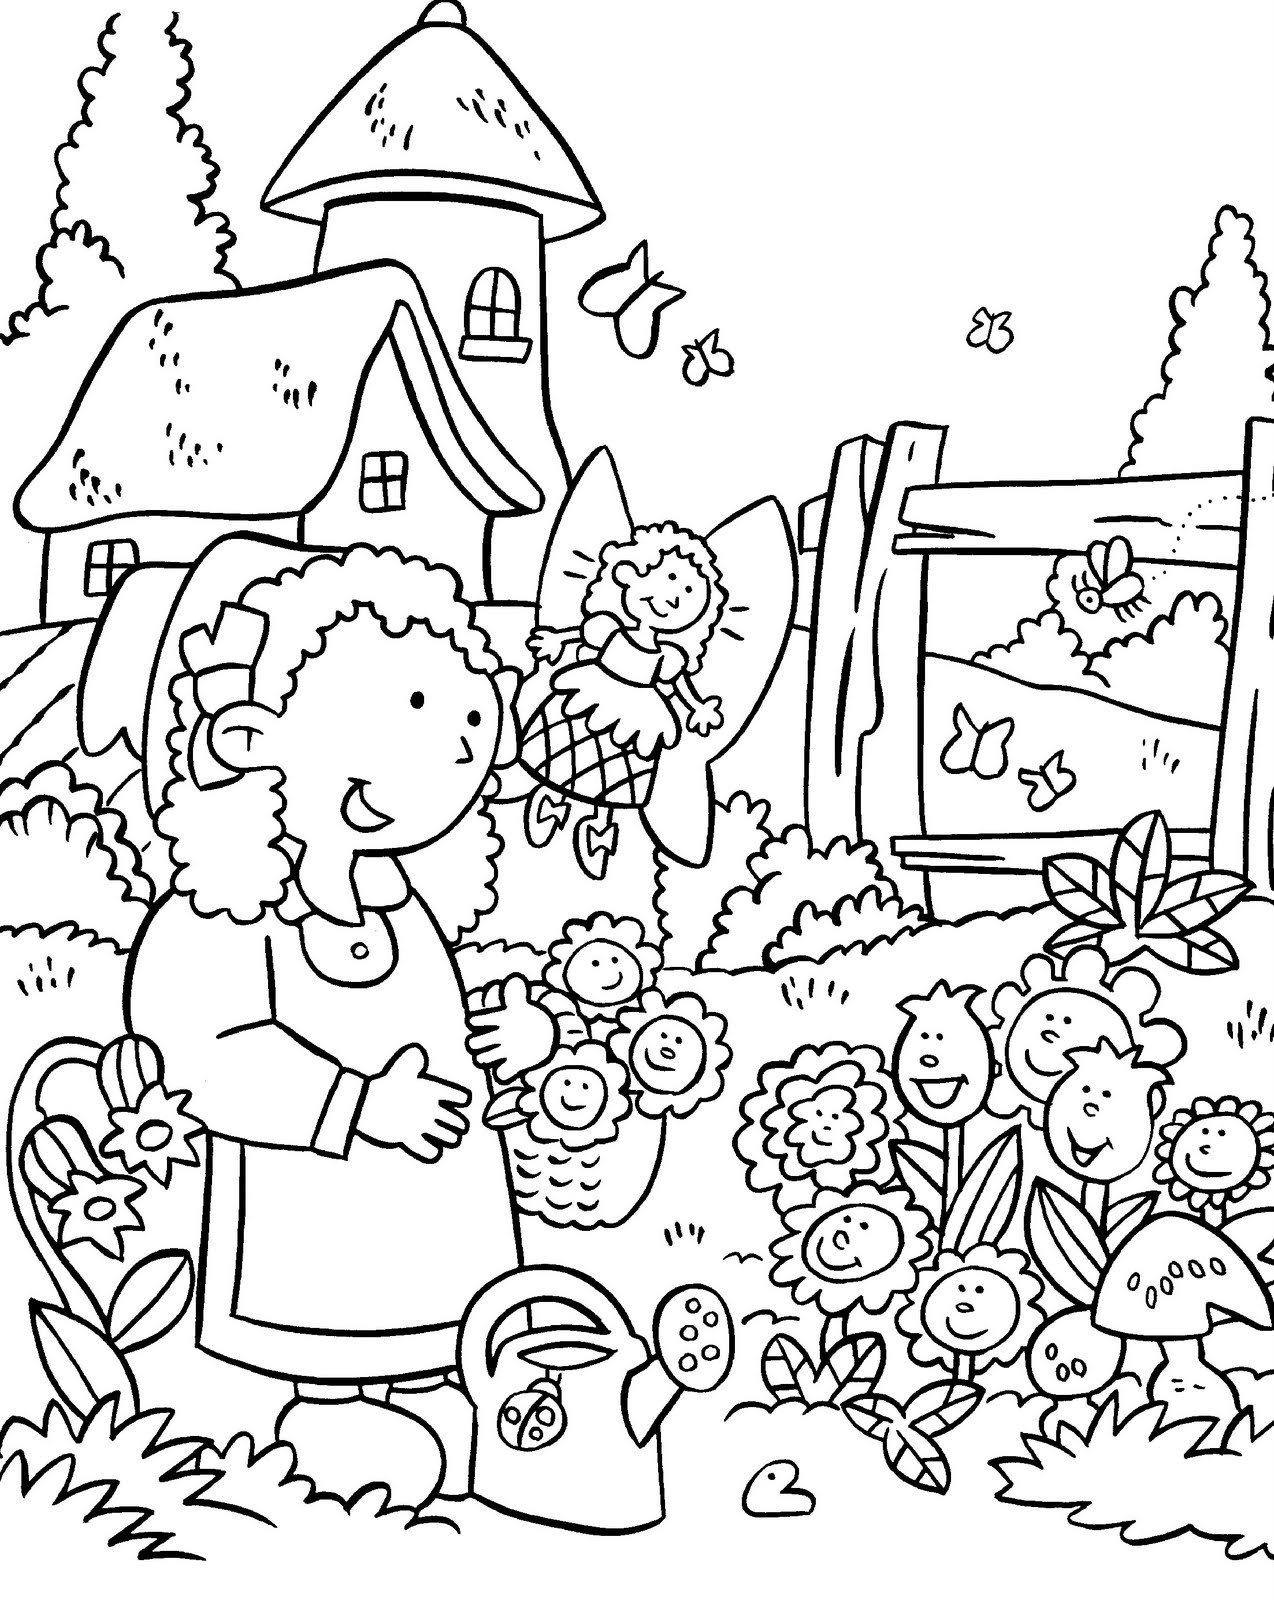 Best Website For Free Coloring Pages : Flower garden coloring pages to download and print for free